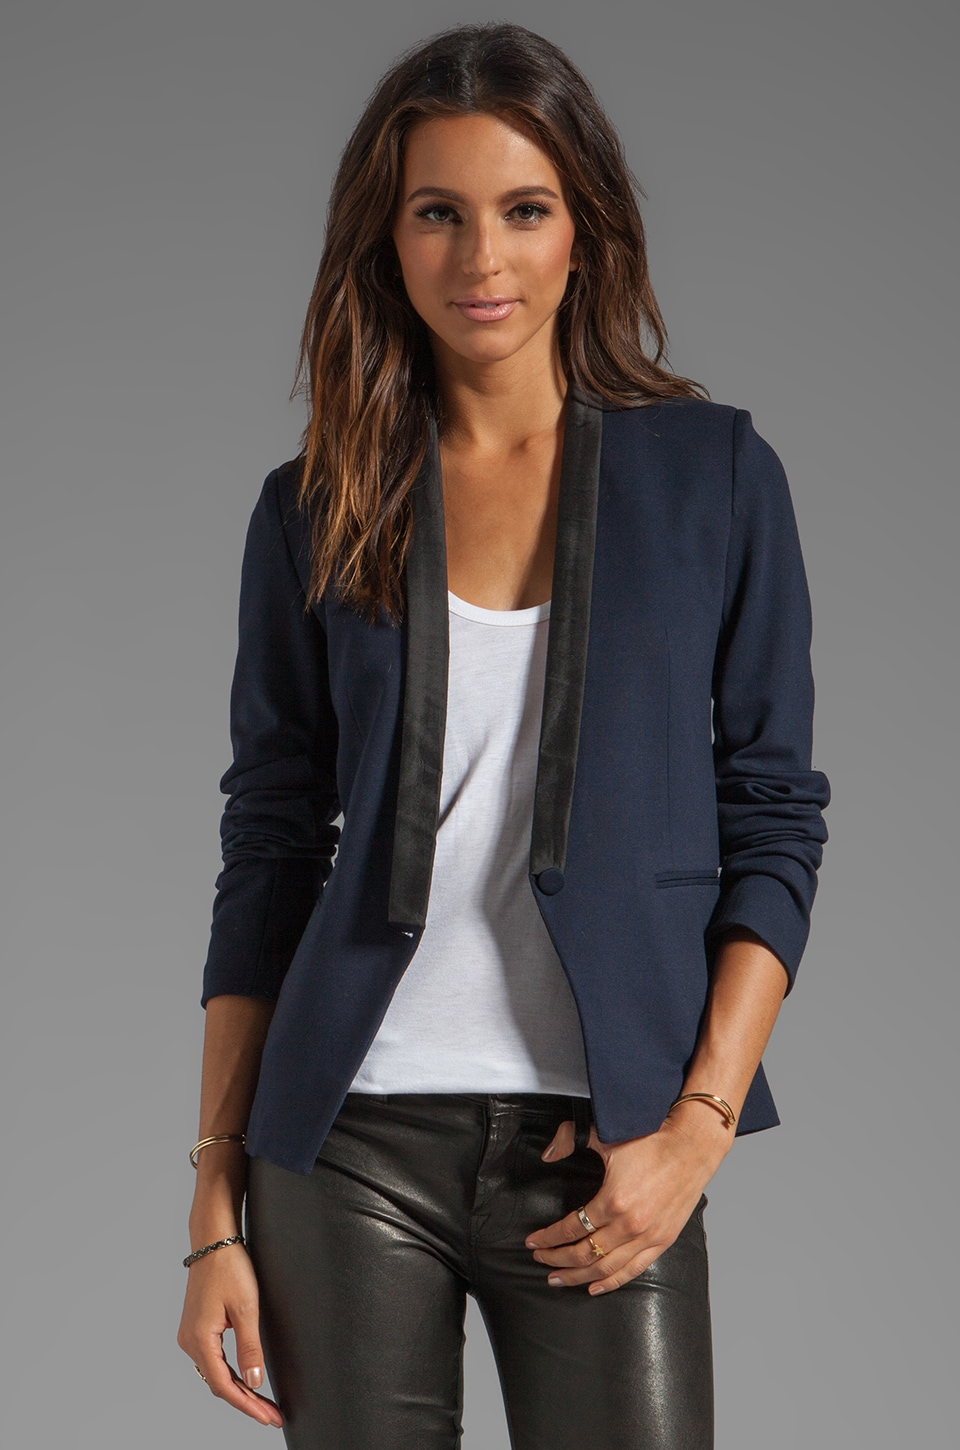 Bailey 44 Road Not Taken Blazer in Navy with Black Trim